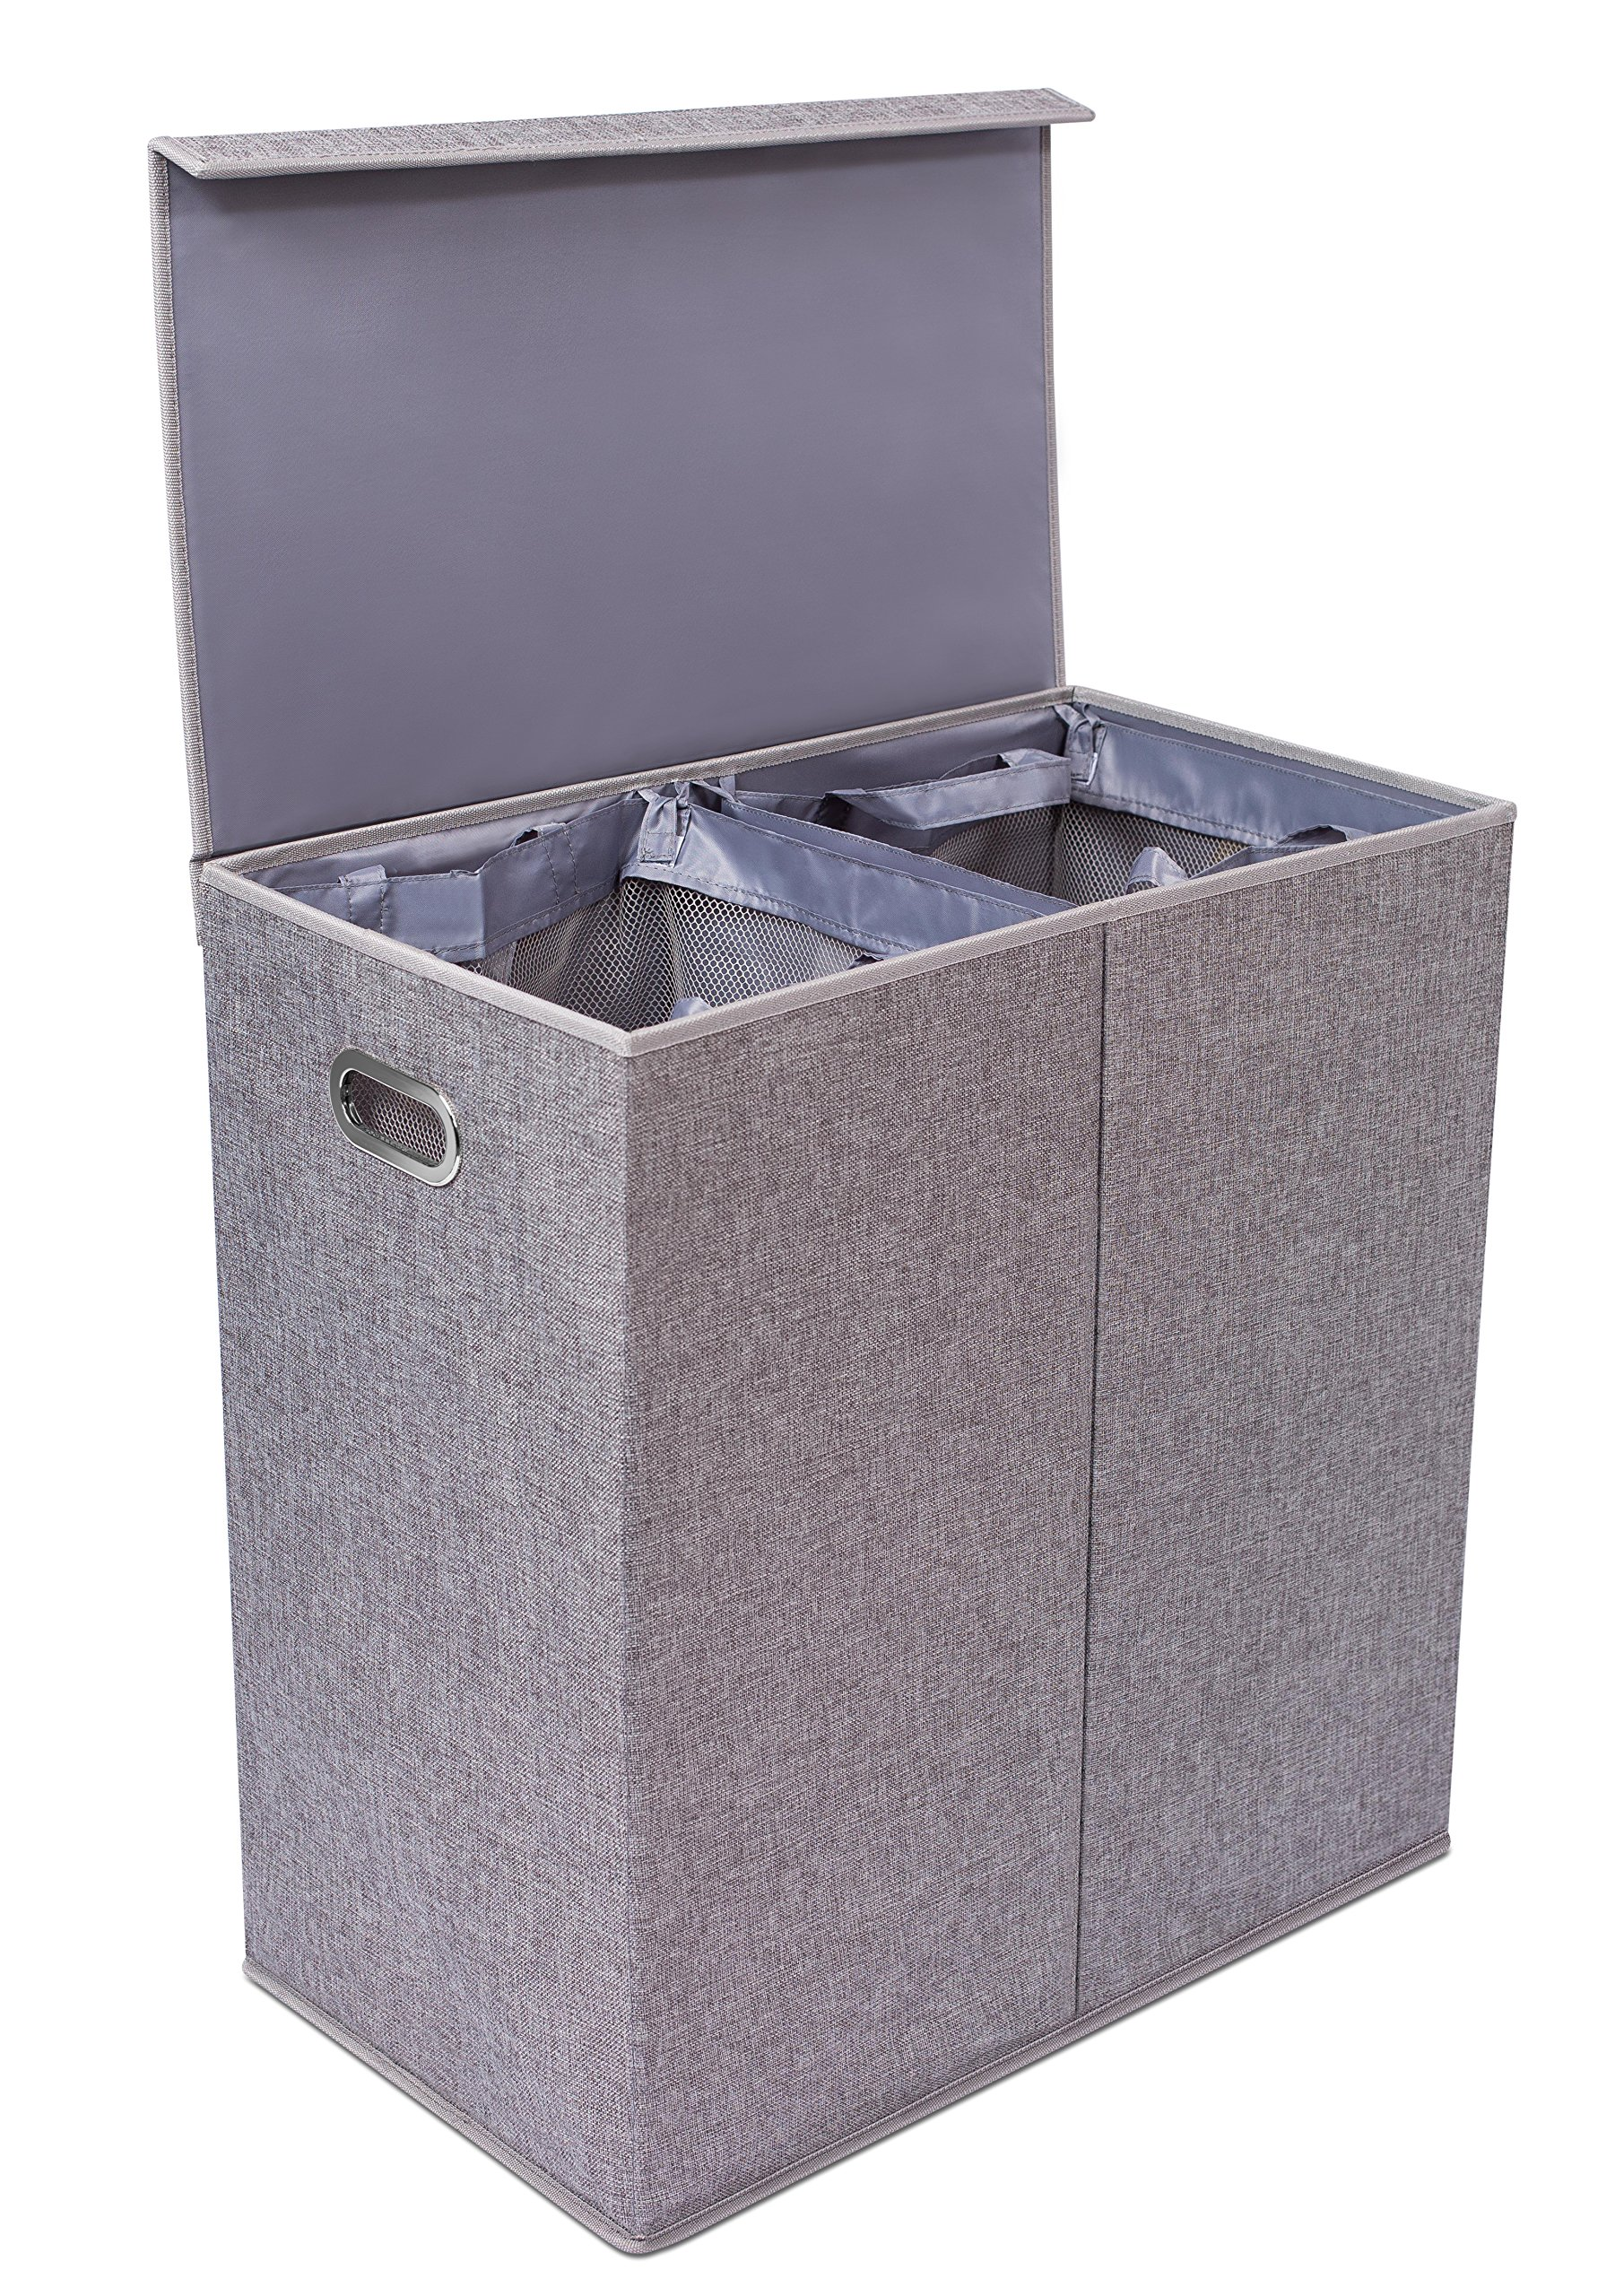 BirdRock Home Double Laundry Hamper with Lid and Removable Liners - Linen Hampers - Grey Foldable Bin - Easily Transport Clothes - Cut Out Handles - Clothes Basket by BIRDROCK HOME